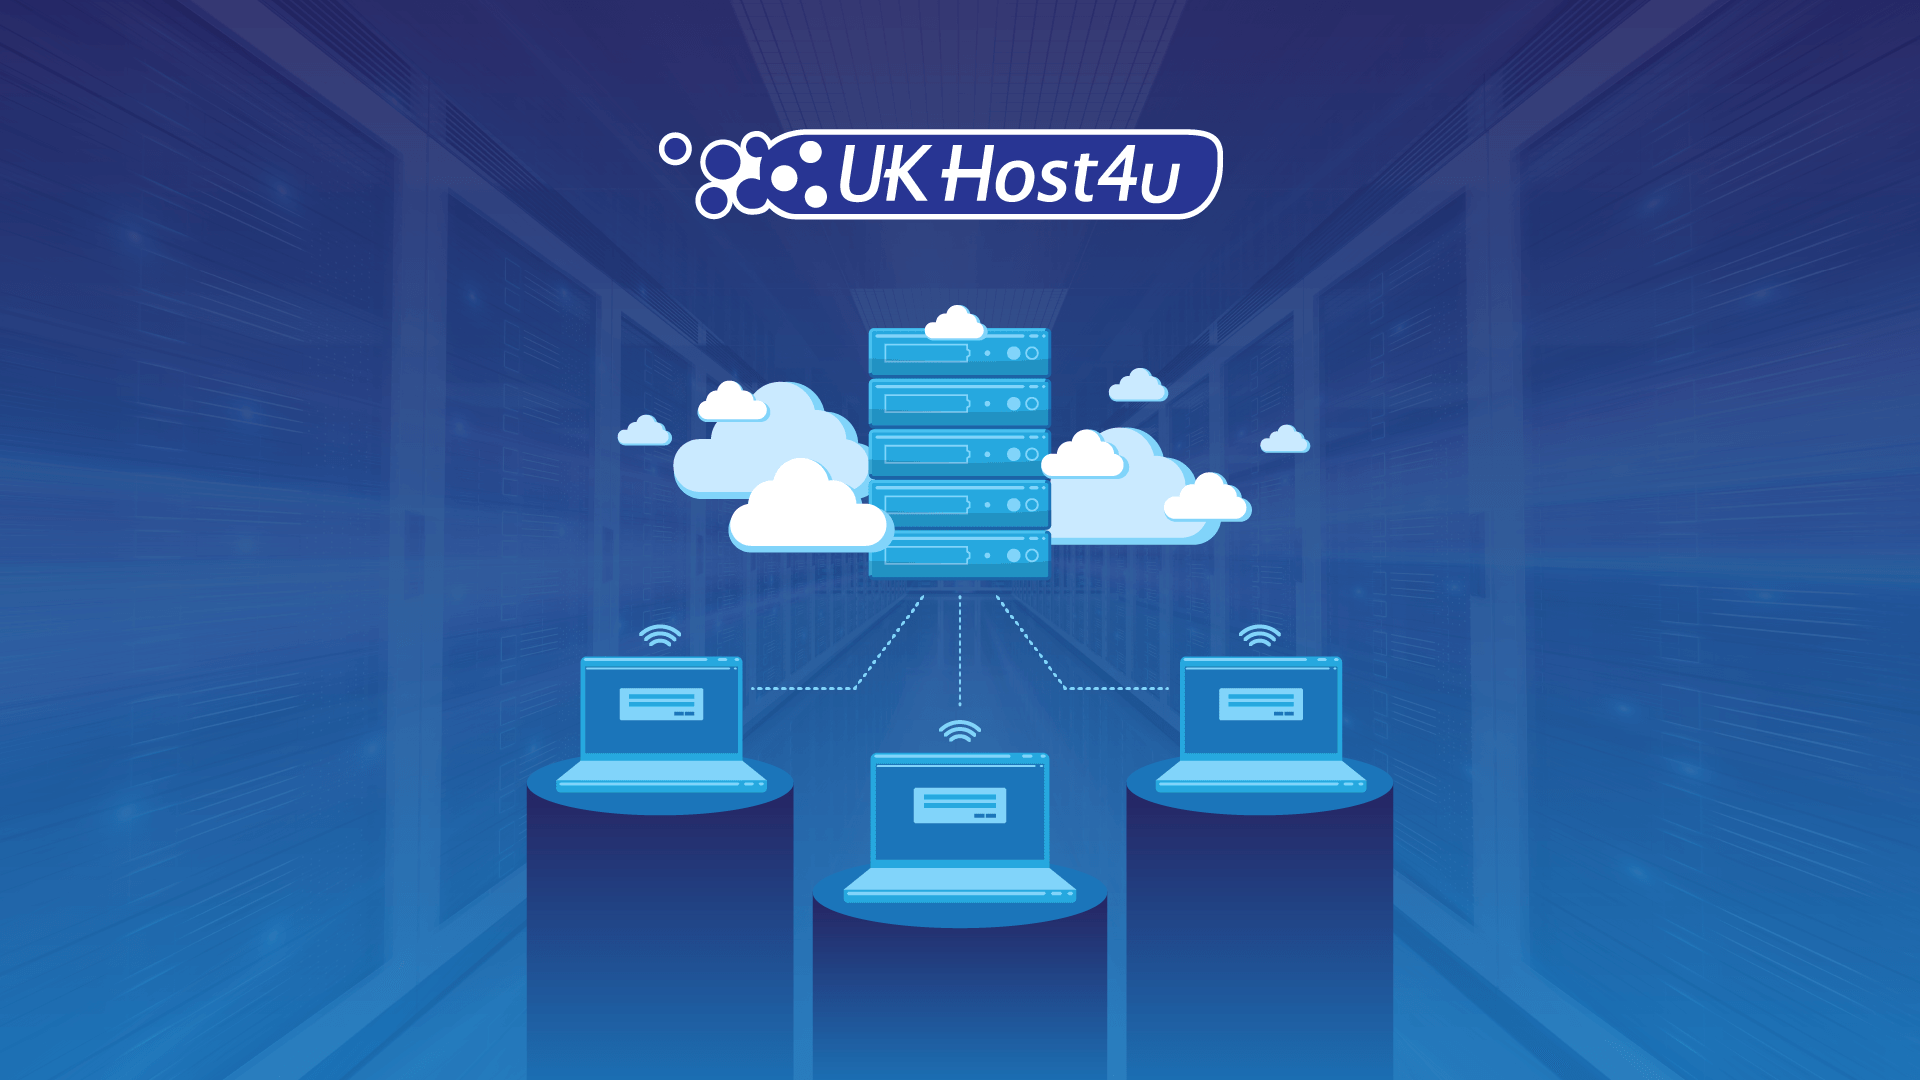 Business Update: UKHost4u Launches New Cloud Solutions